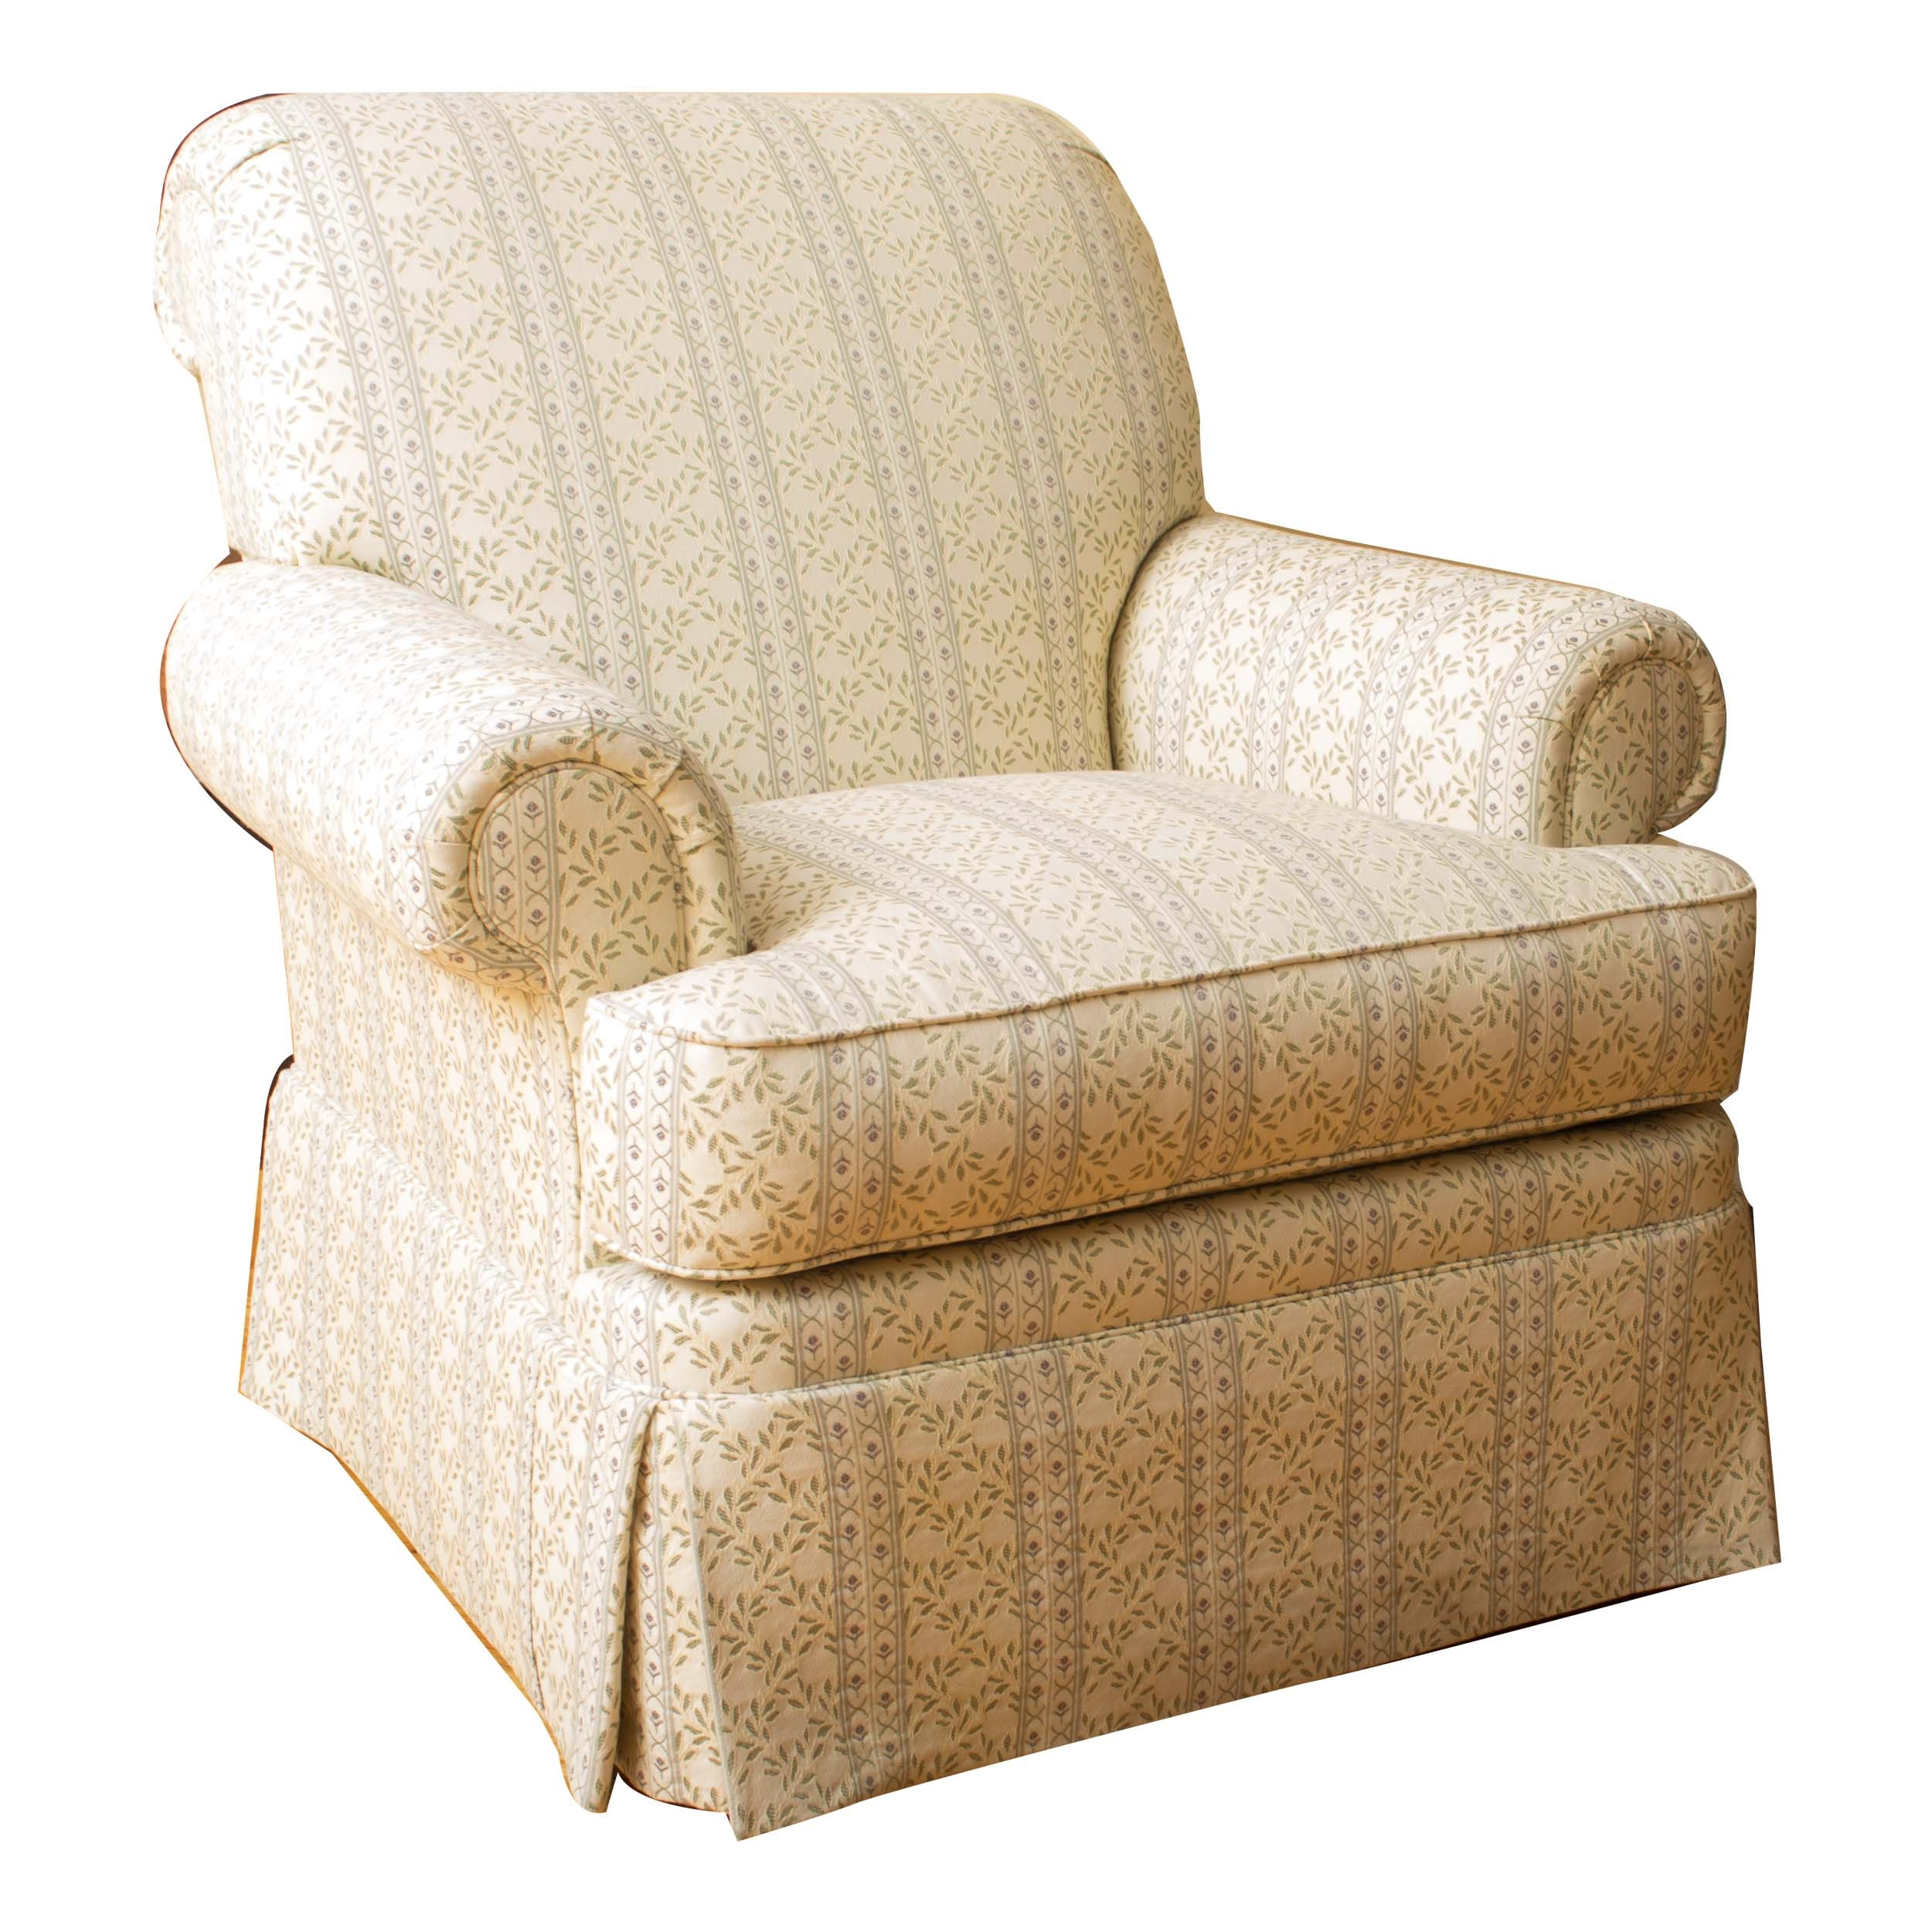 Upholstered Arm Chair by Beacon Hill